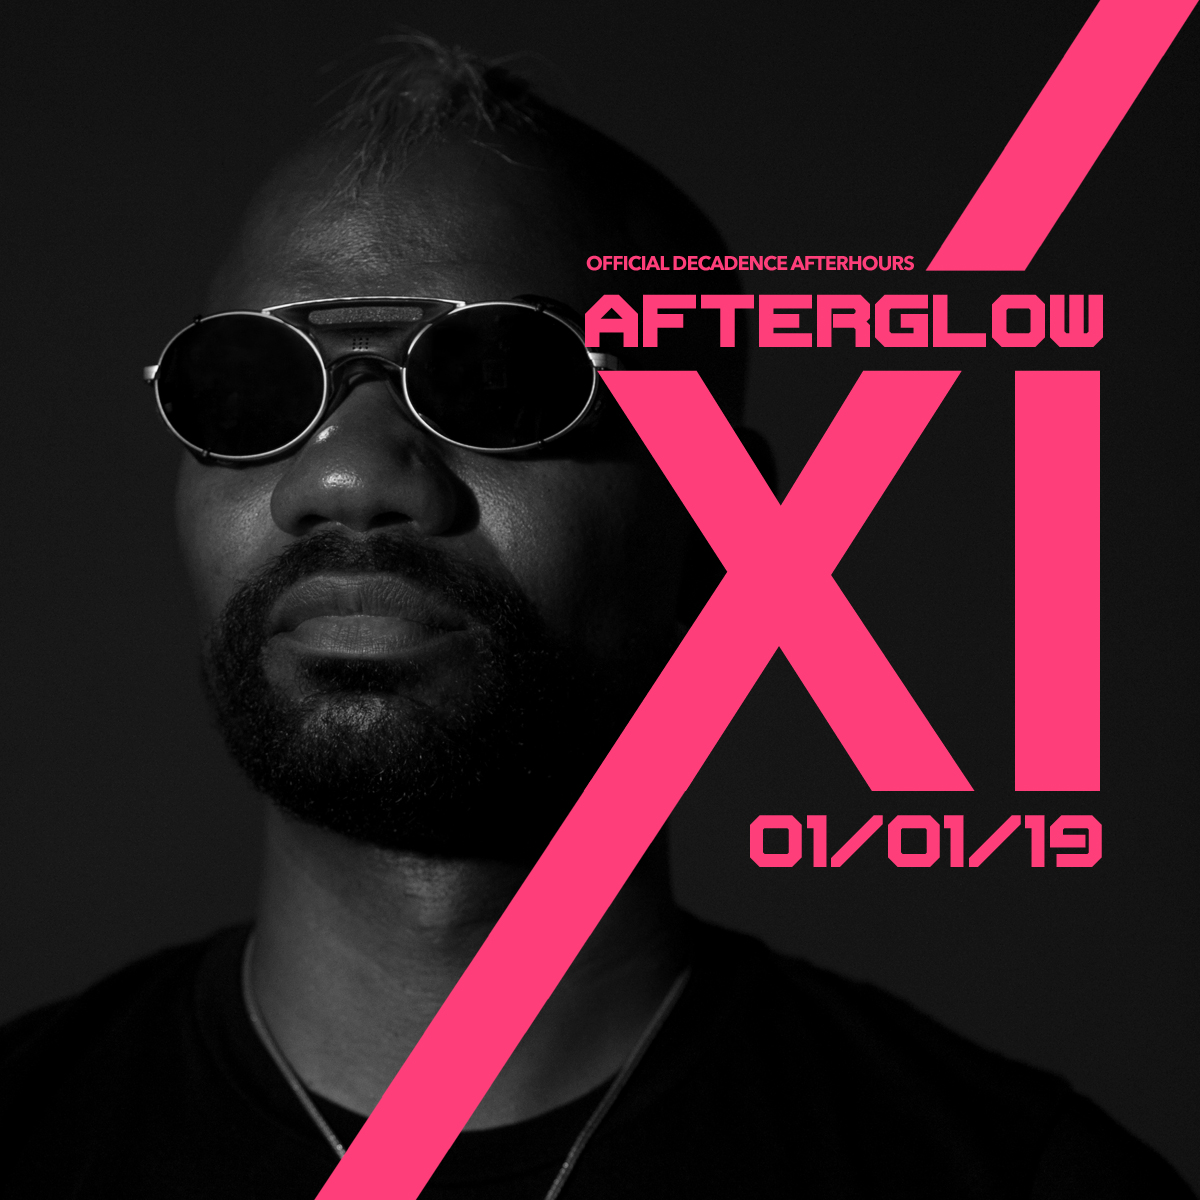 Flyer for Afterglow XI ft. Green Velvet - Decadence Arizona Afterparty